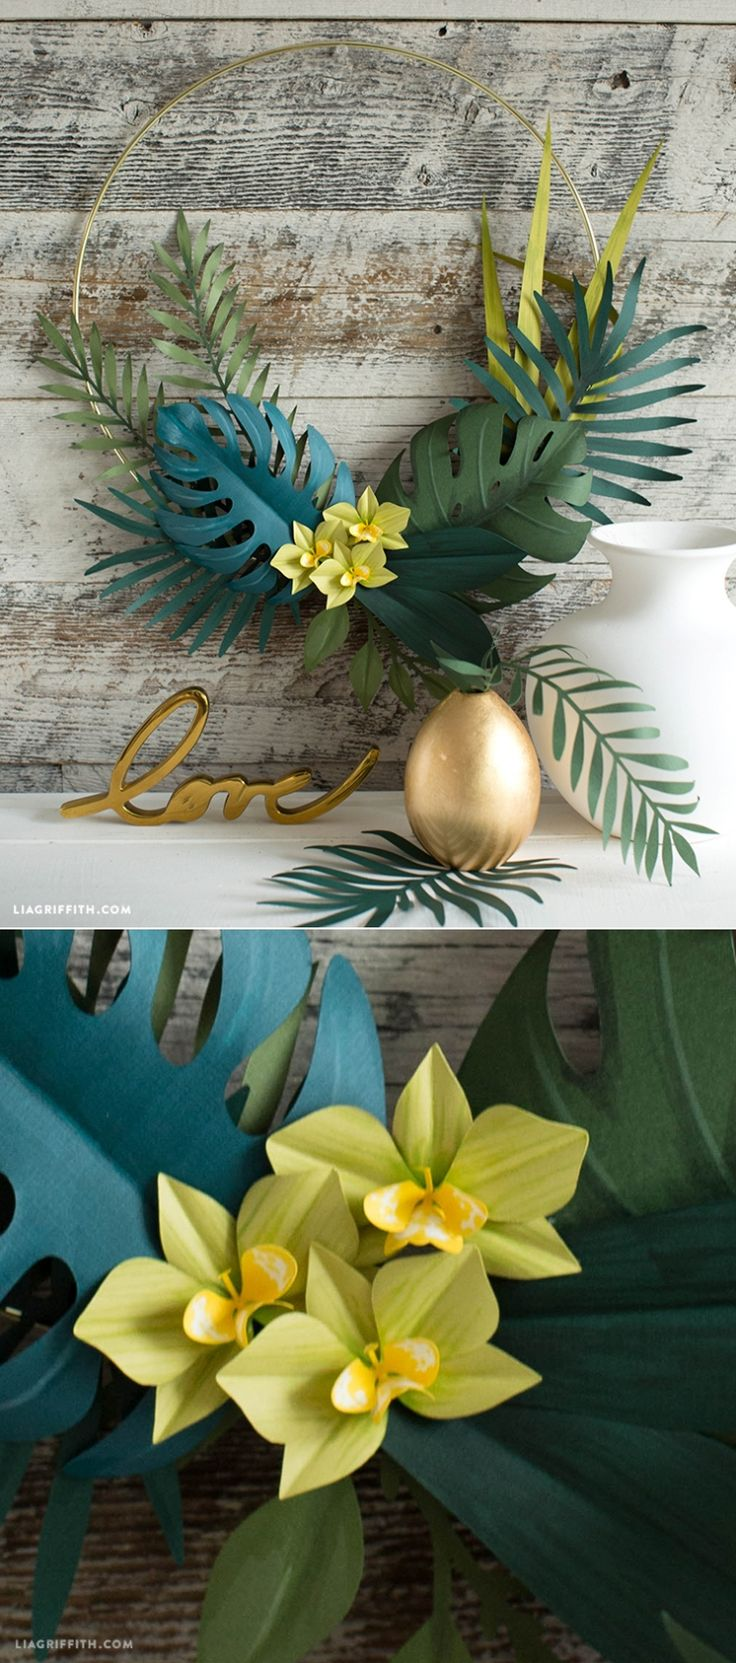 #PaperFlowers You can make this! Pattern and tutorial at www.LiaGriffith.com: